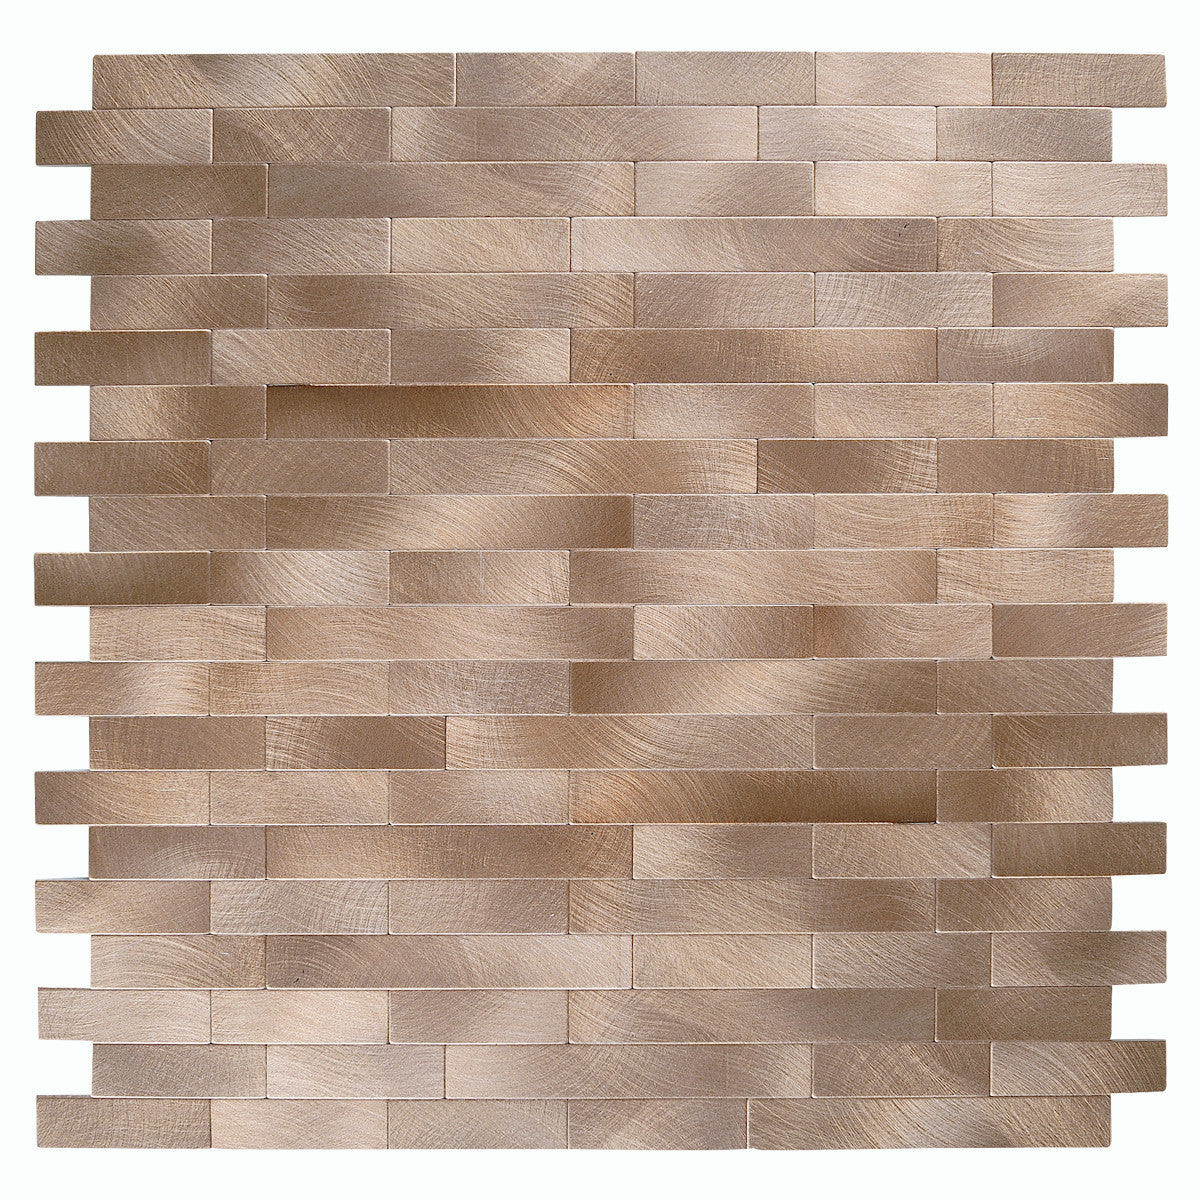 Decopus Peel and Stick Metal Tile Backsplash (LNG15 Copper Matte 5pc/Pack, 12in x 12in, 1.6 in Thick) for Kitchen Wall, Bathroom, Stick On Metal Wall Tile for, Self Adhesive Metal Tile